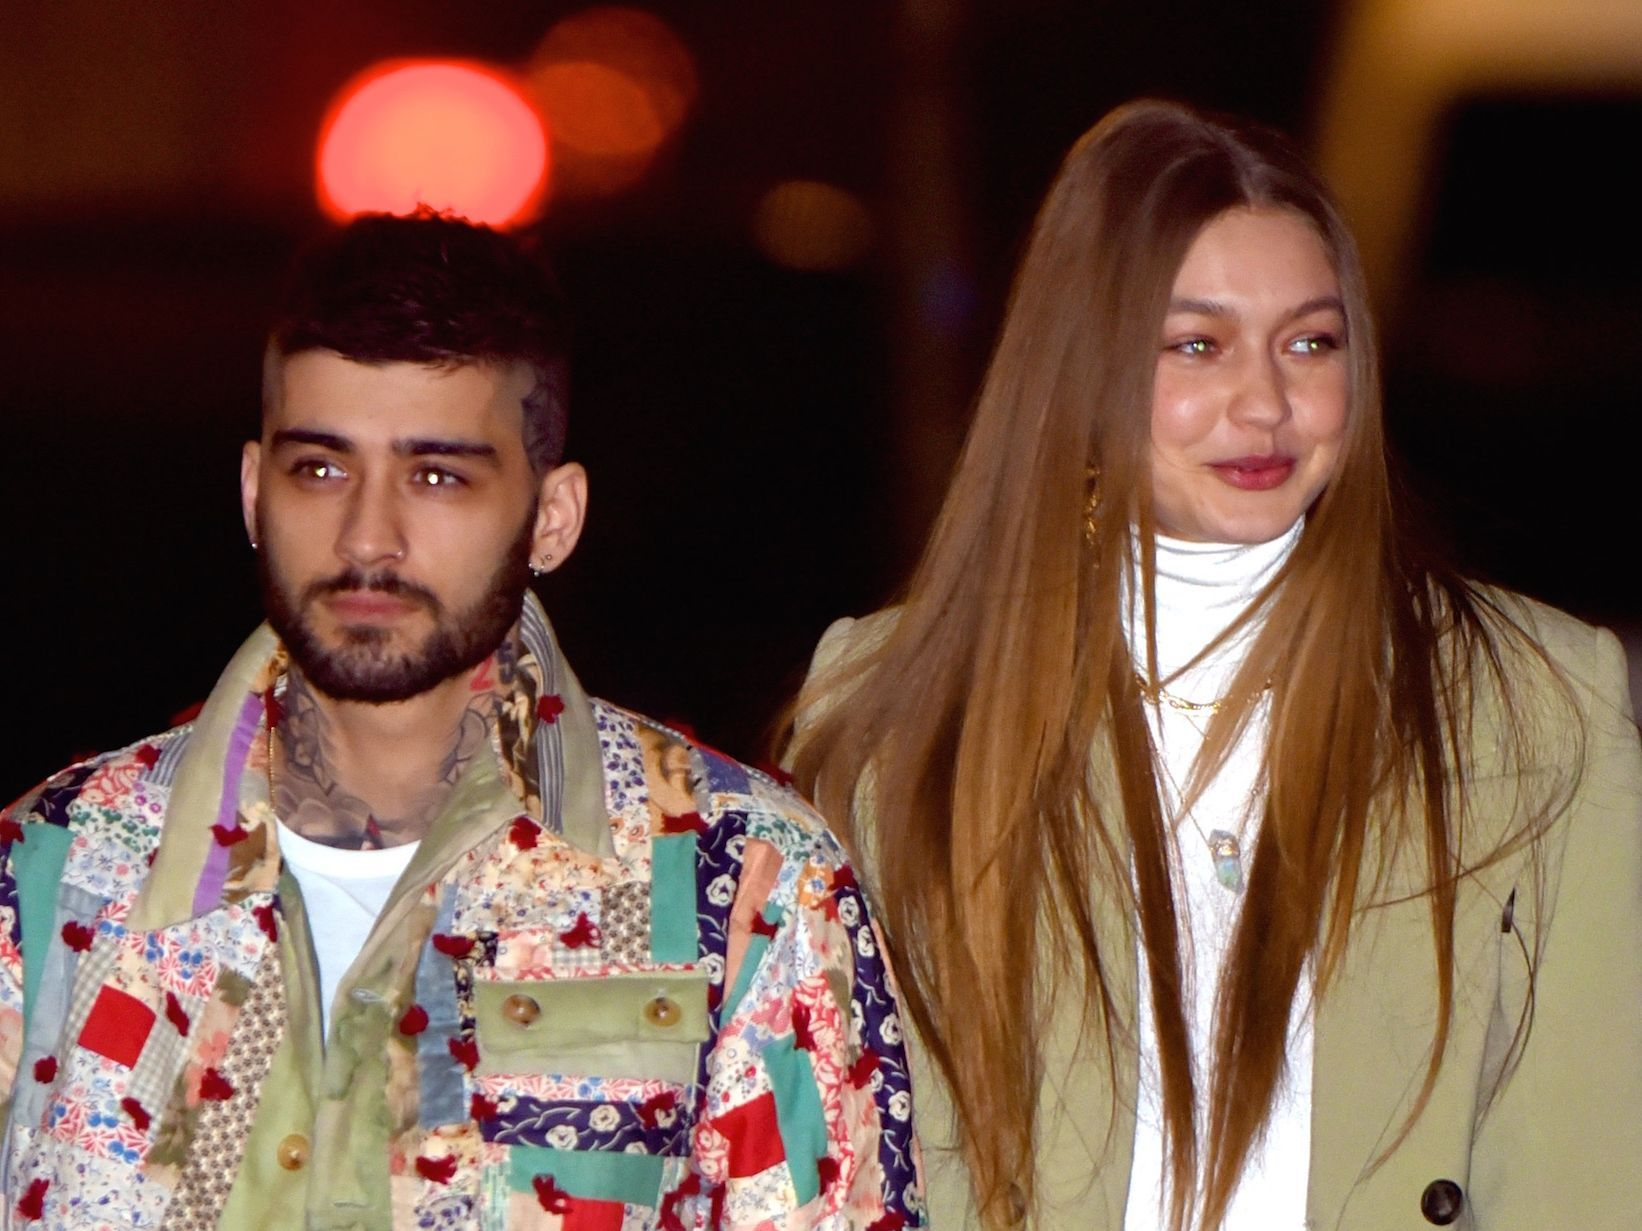 Zayn Malik And Gigi Hadid Welcome A Baby Daughter — See Her Adorably Tiny Hand